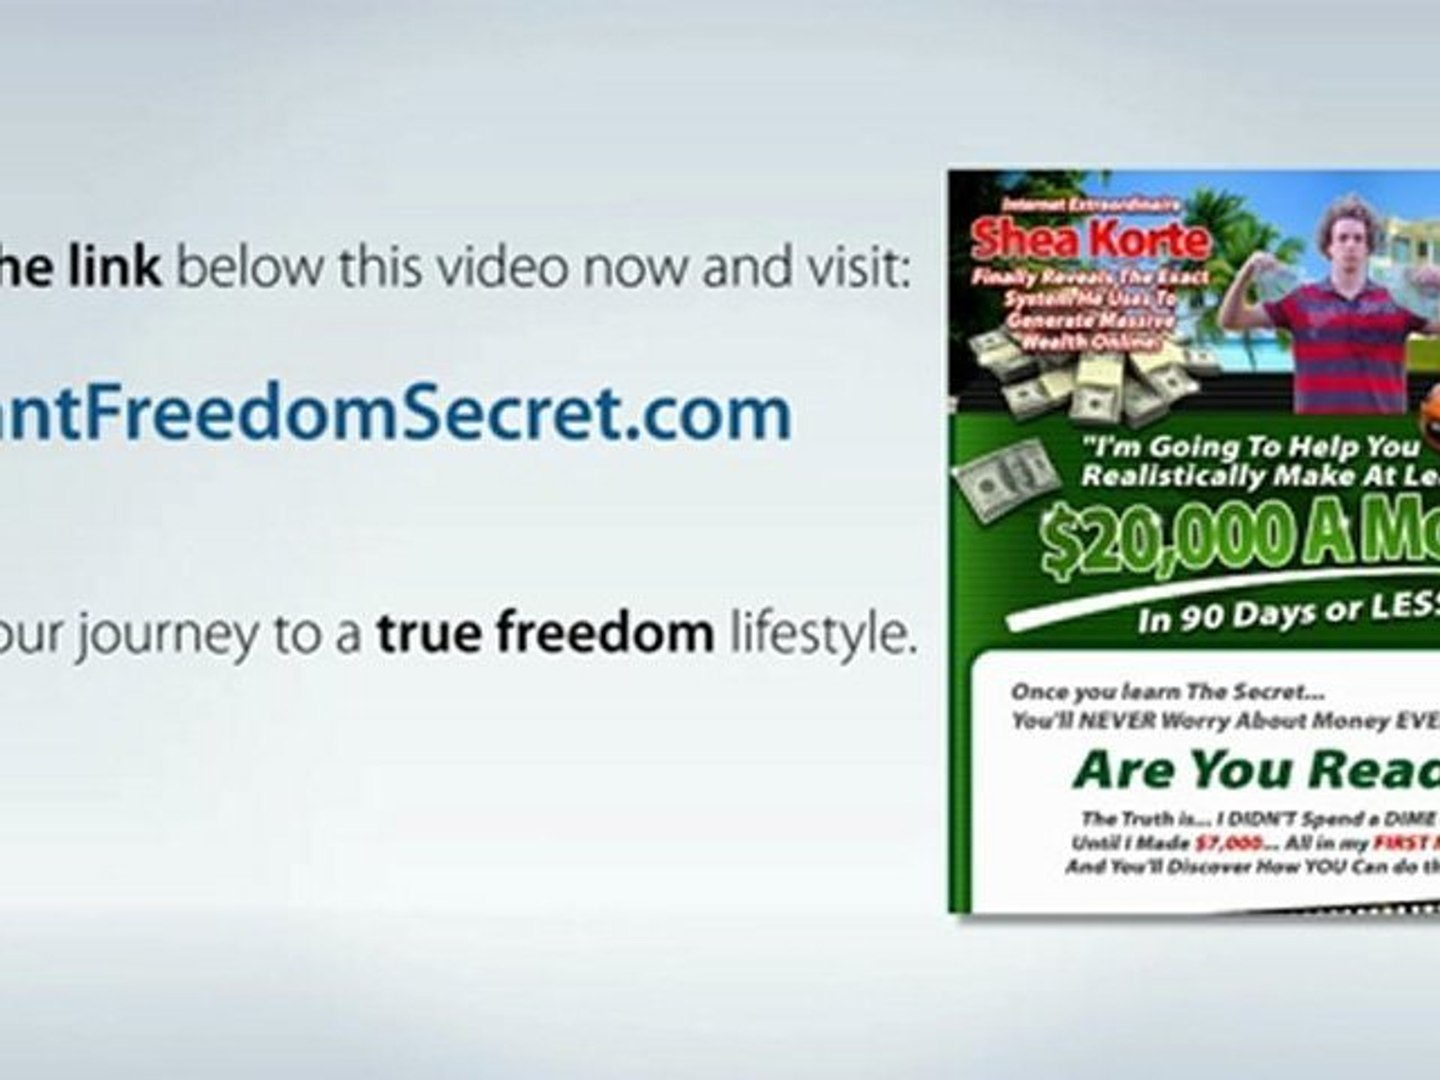 Make Money Super Fast Online - $20K/Mo In 90 Days or Less!